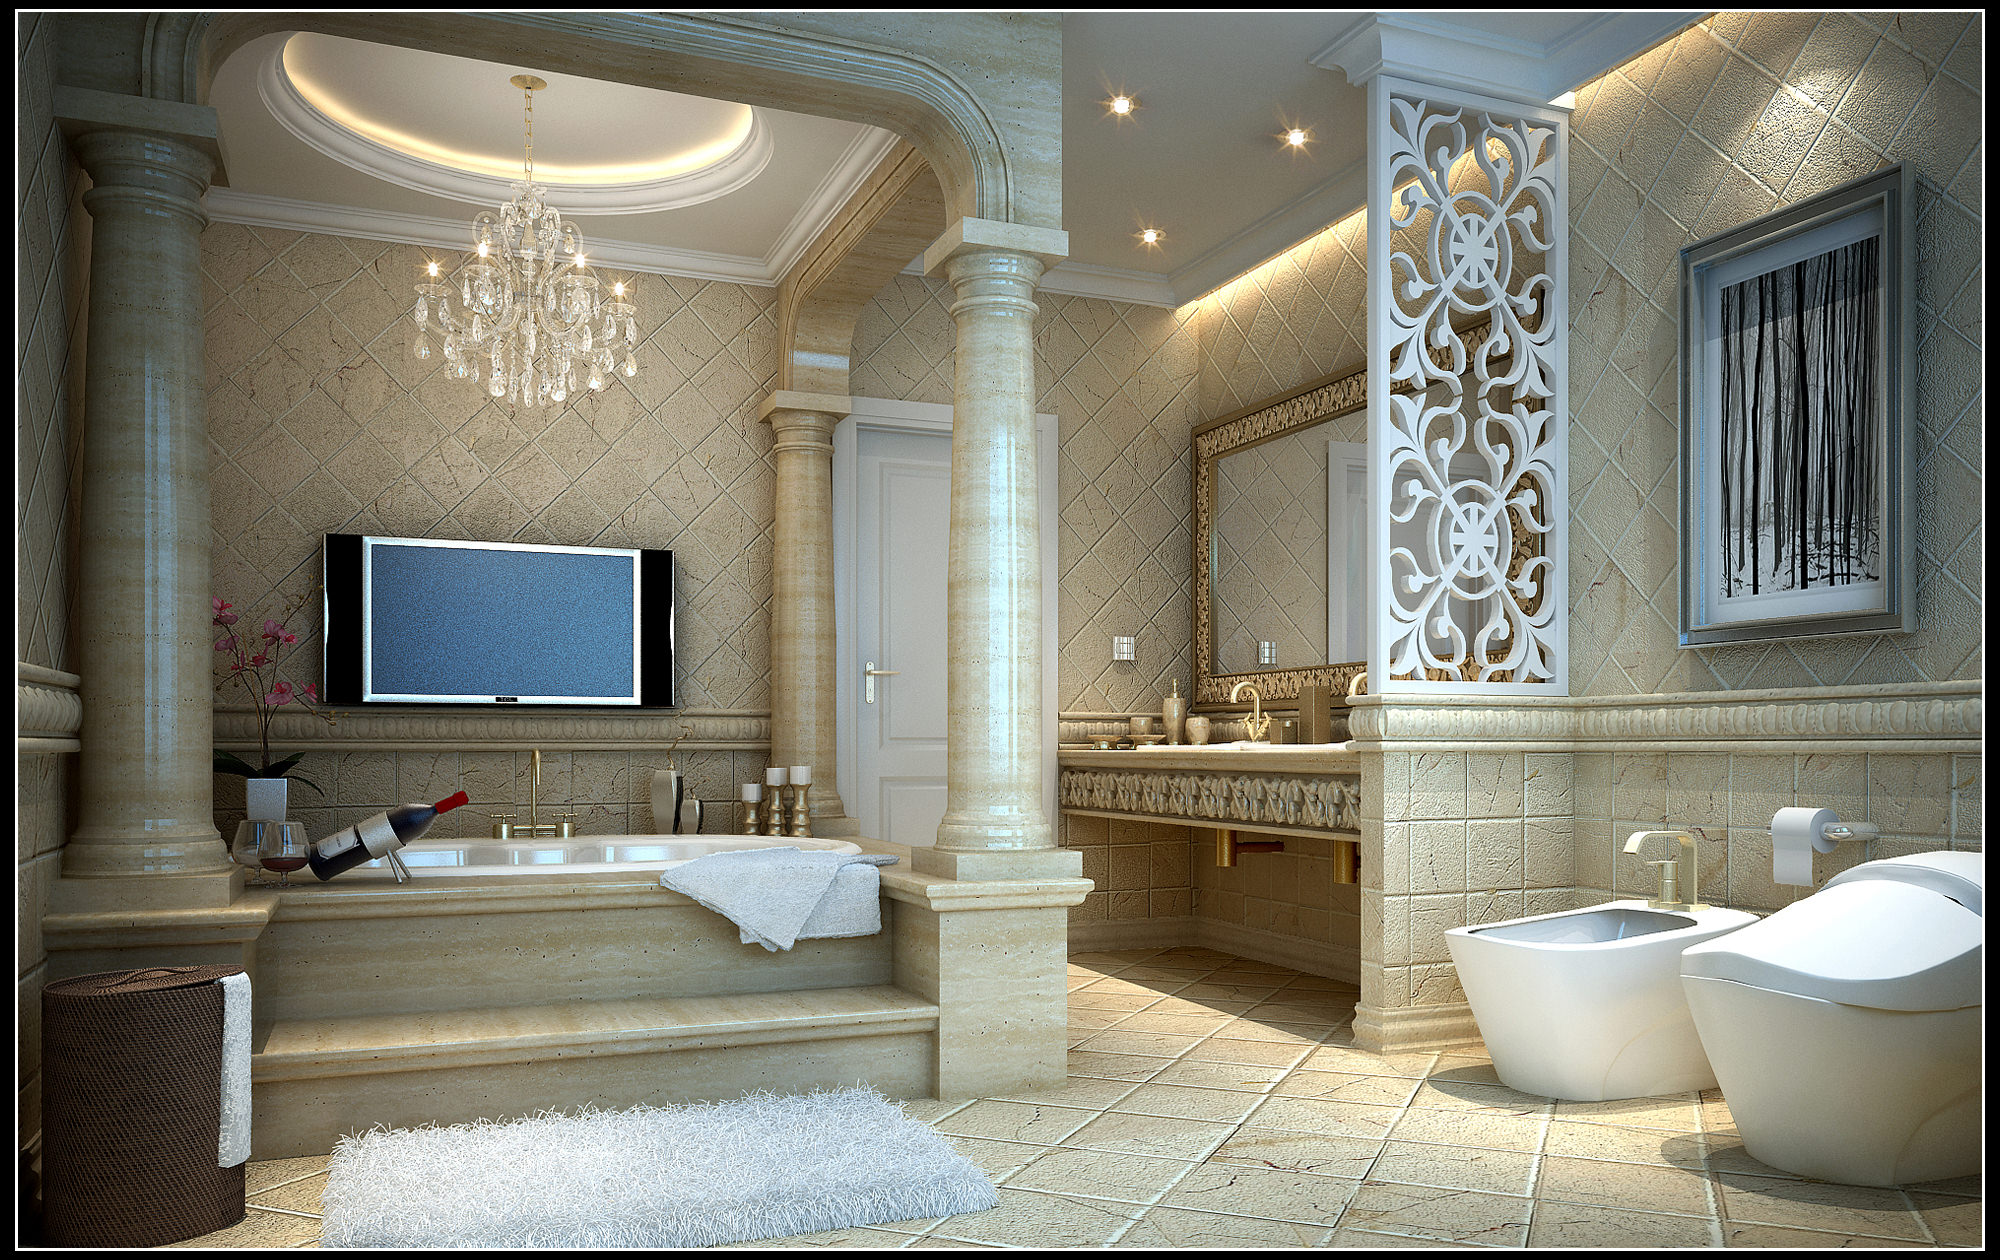 Bathroom Model Luxurious Bathroom Fully Furnished And Decorated 3D Model Max